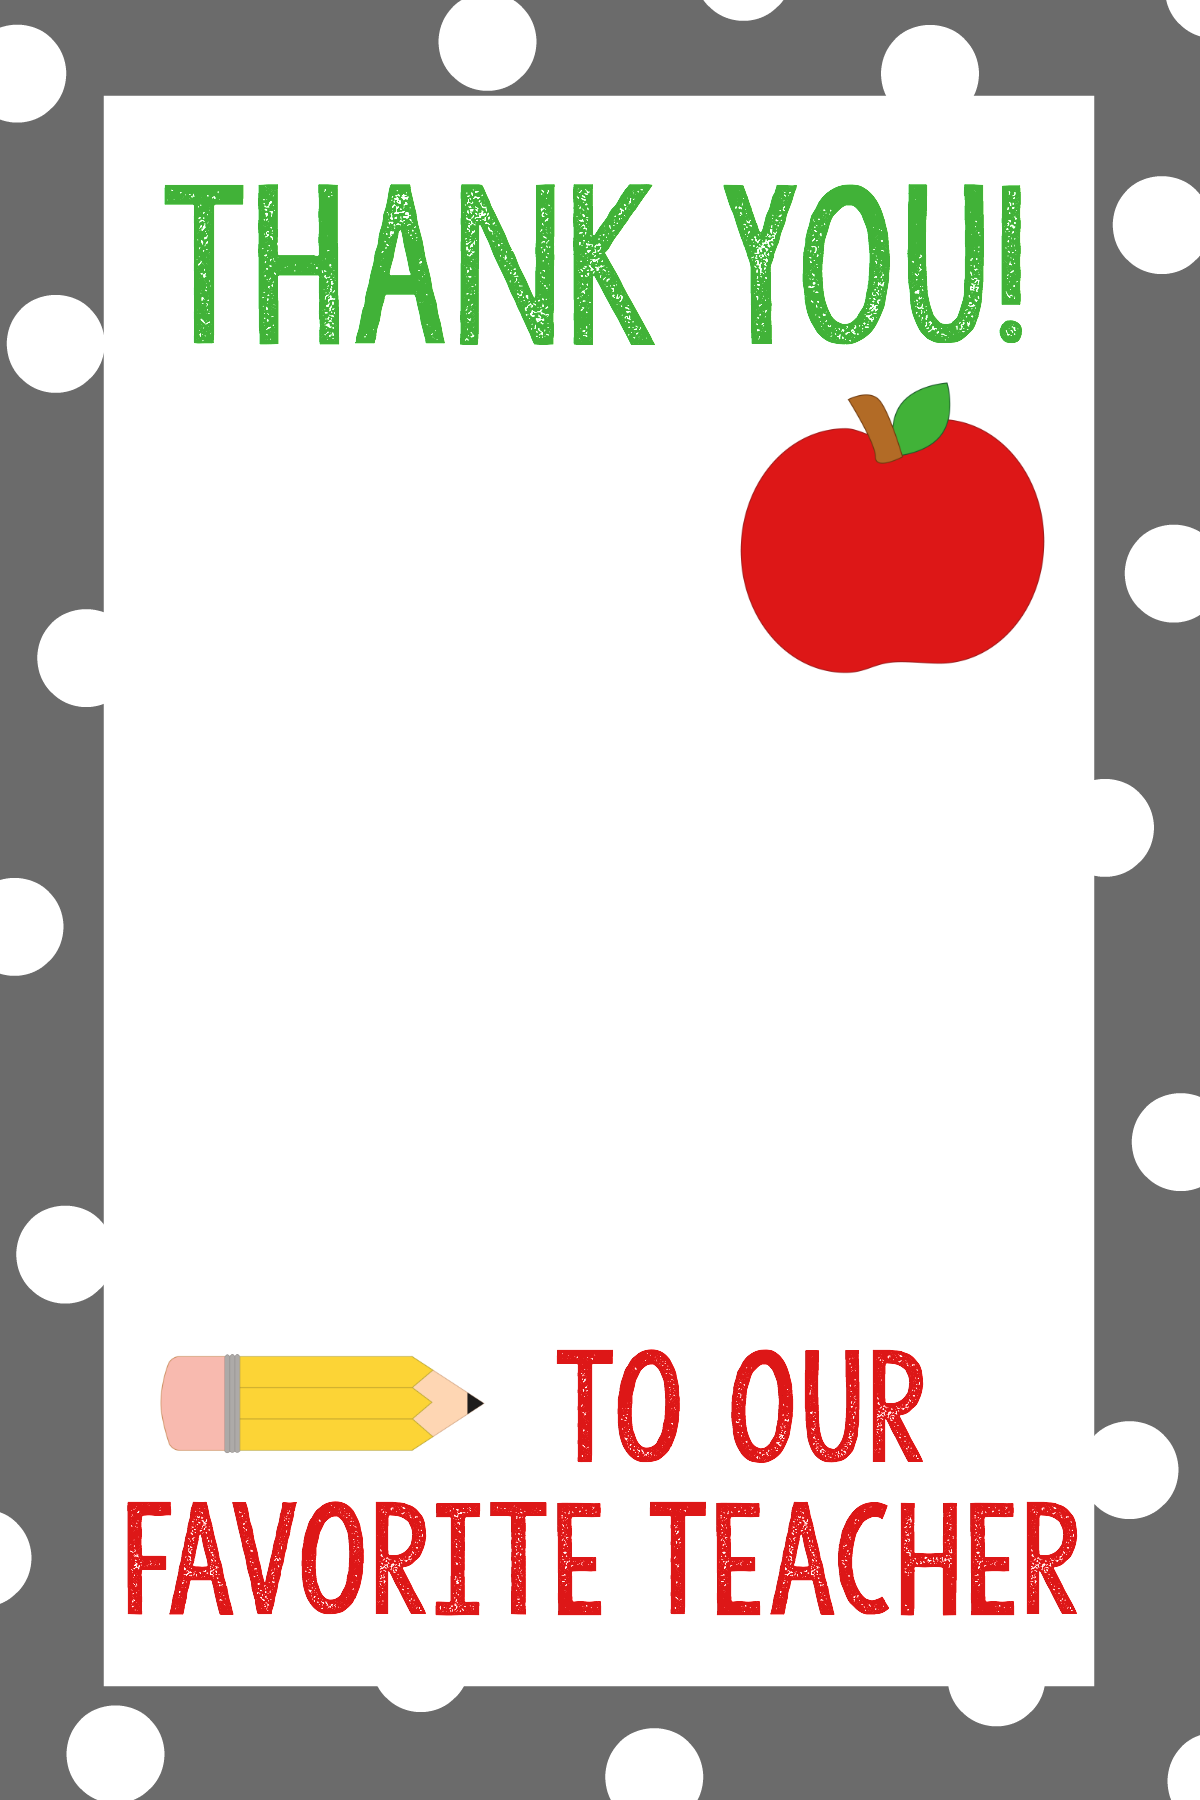 Crafty image with regard to printable teacher appreciation cards